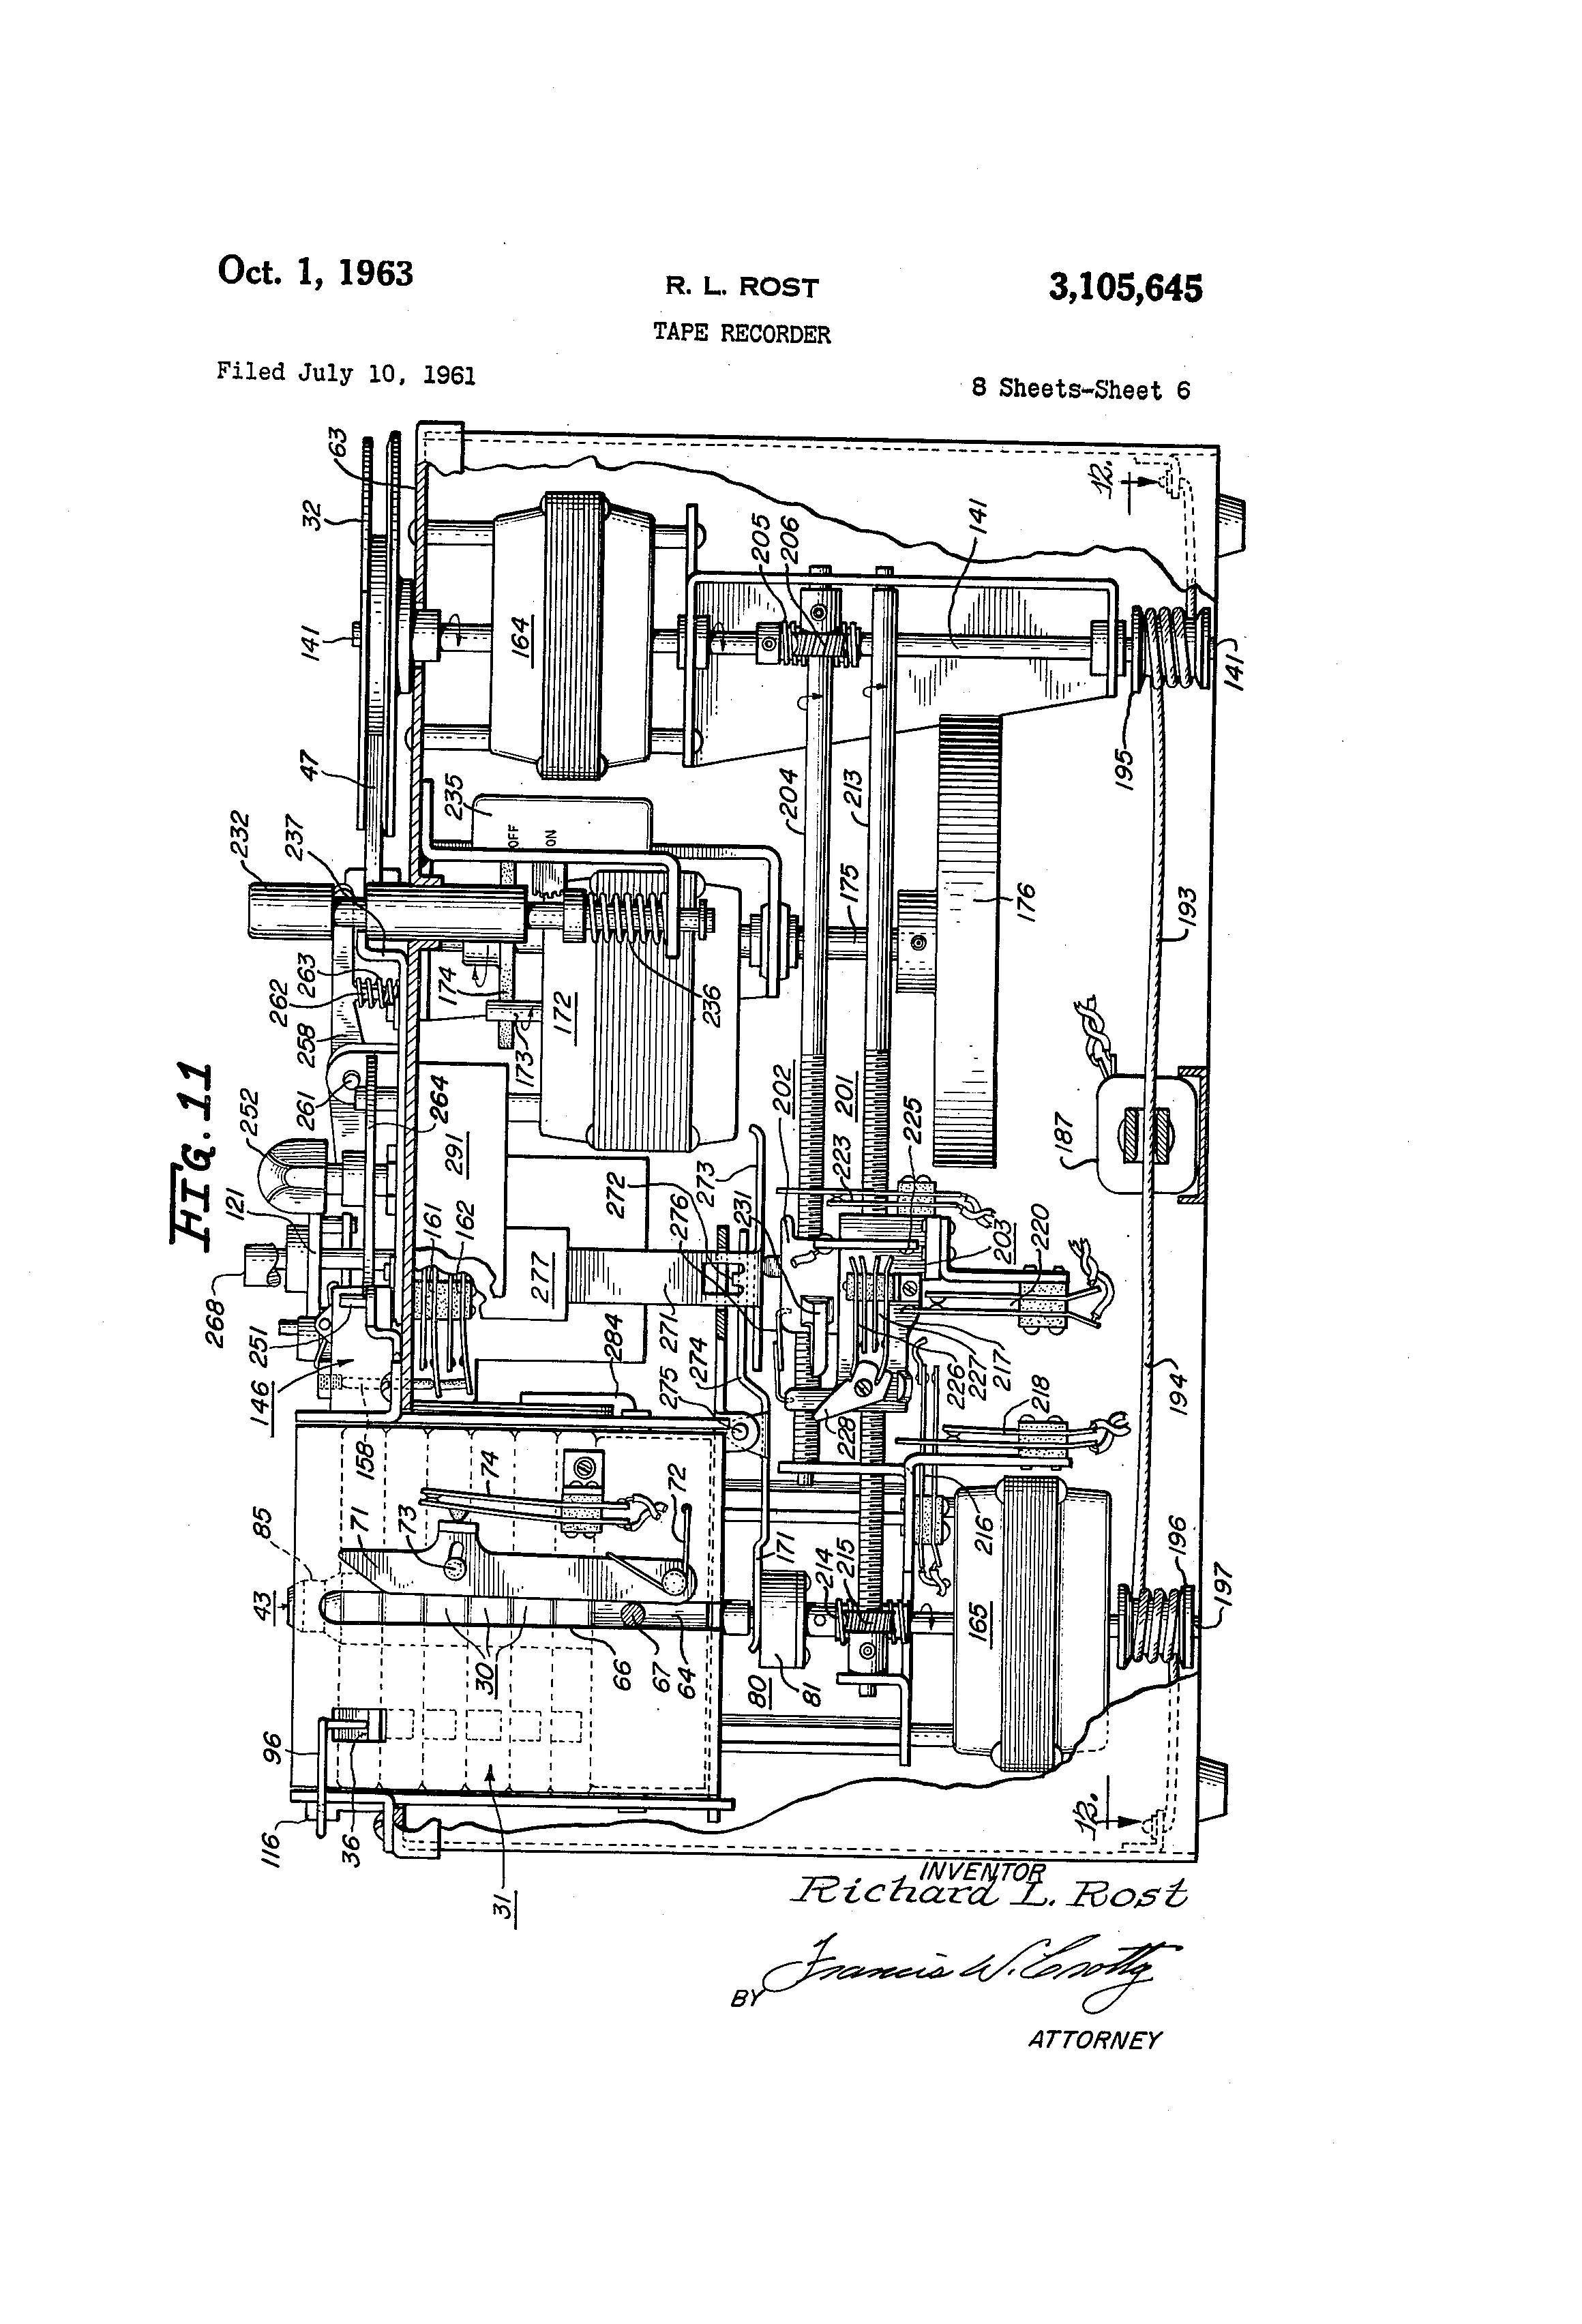 rcel actuator wiring diagram 288 wiring librarypatent drawing patent us3105645 tape recorder google patentsuche patent drawing rcel actuator wiring diagram 288